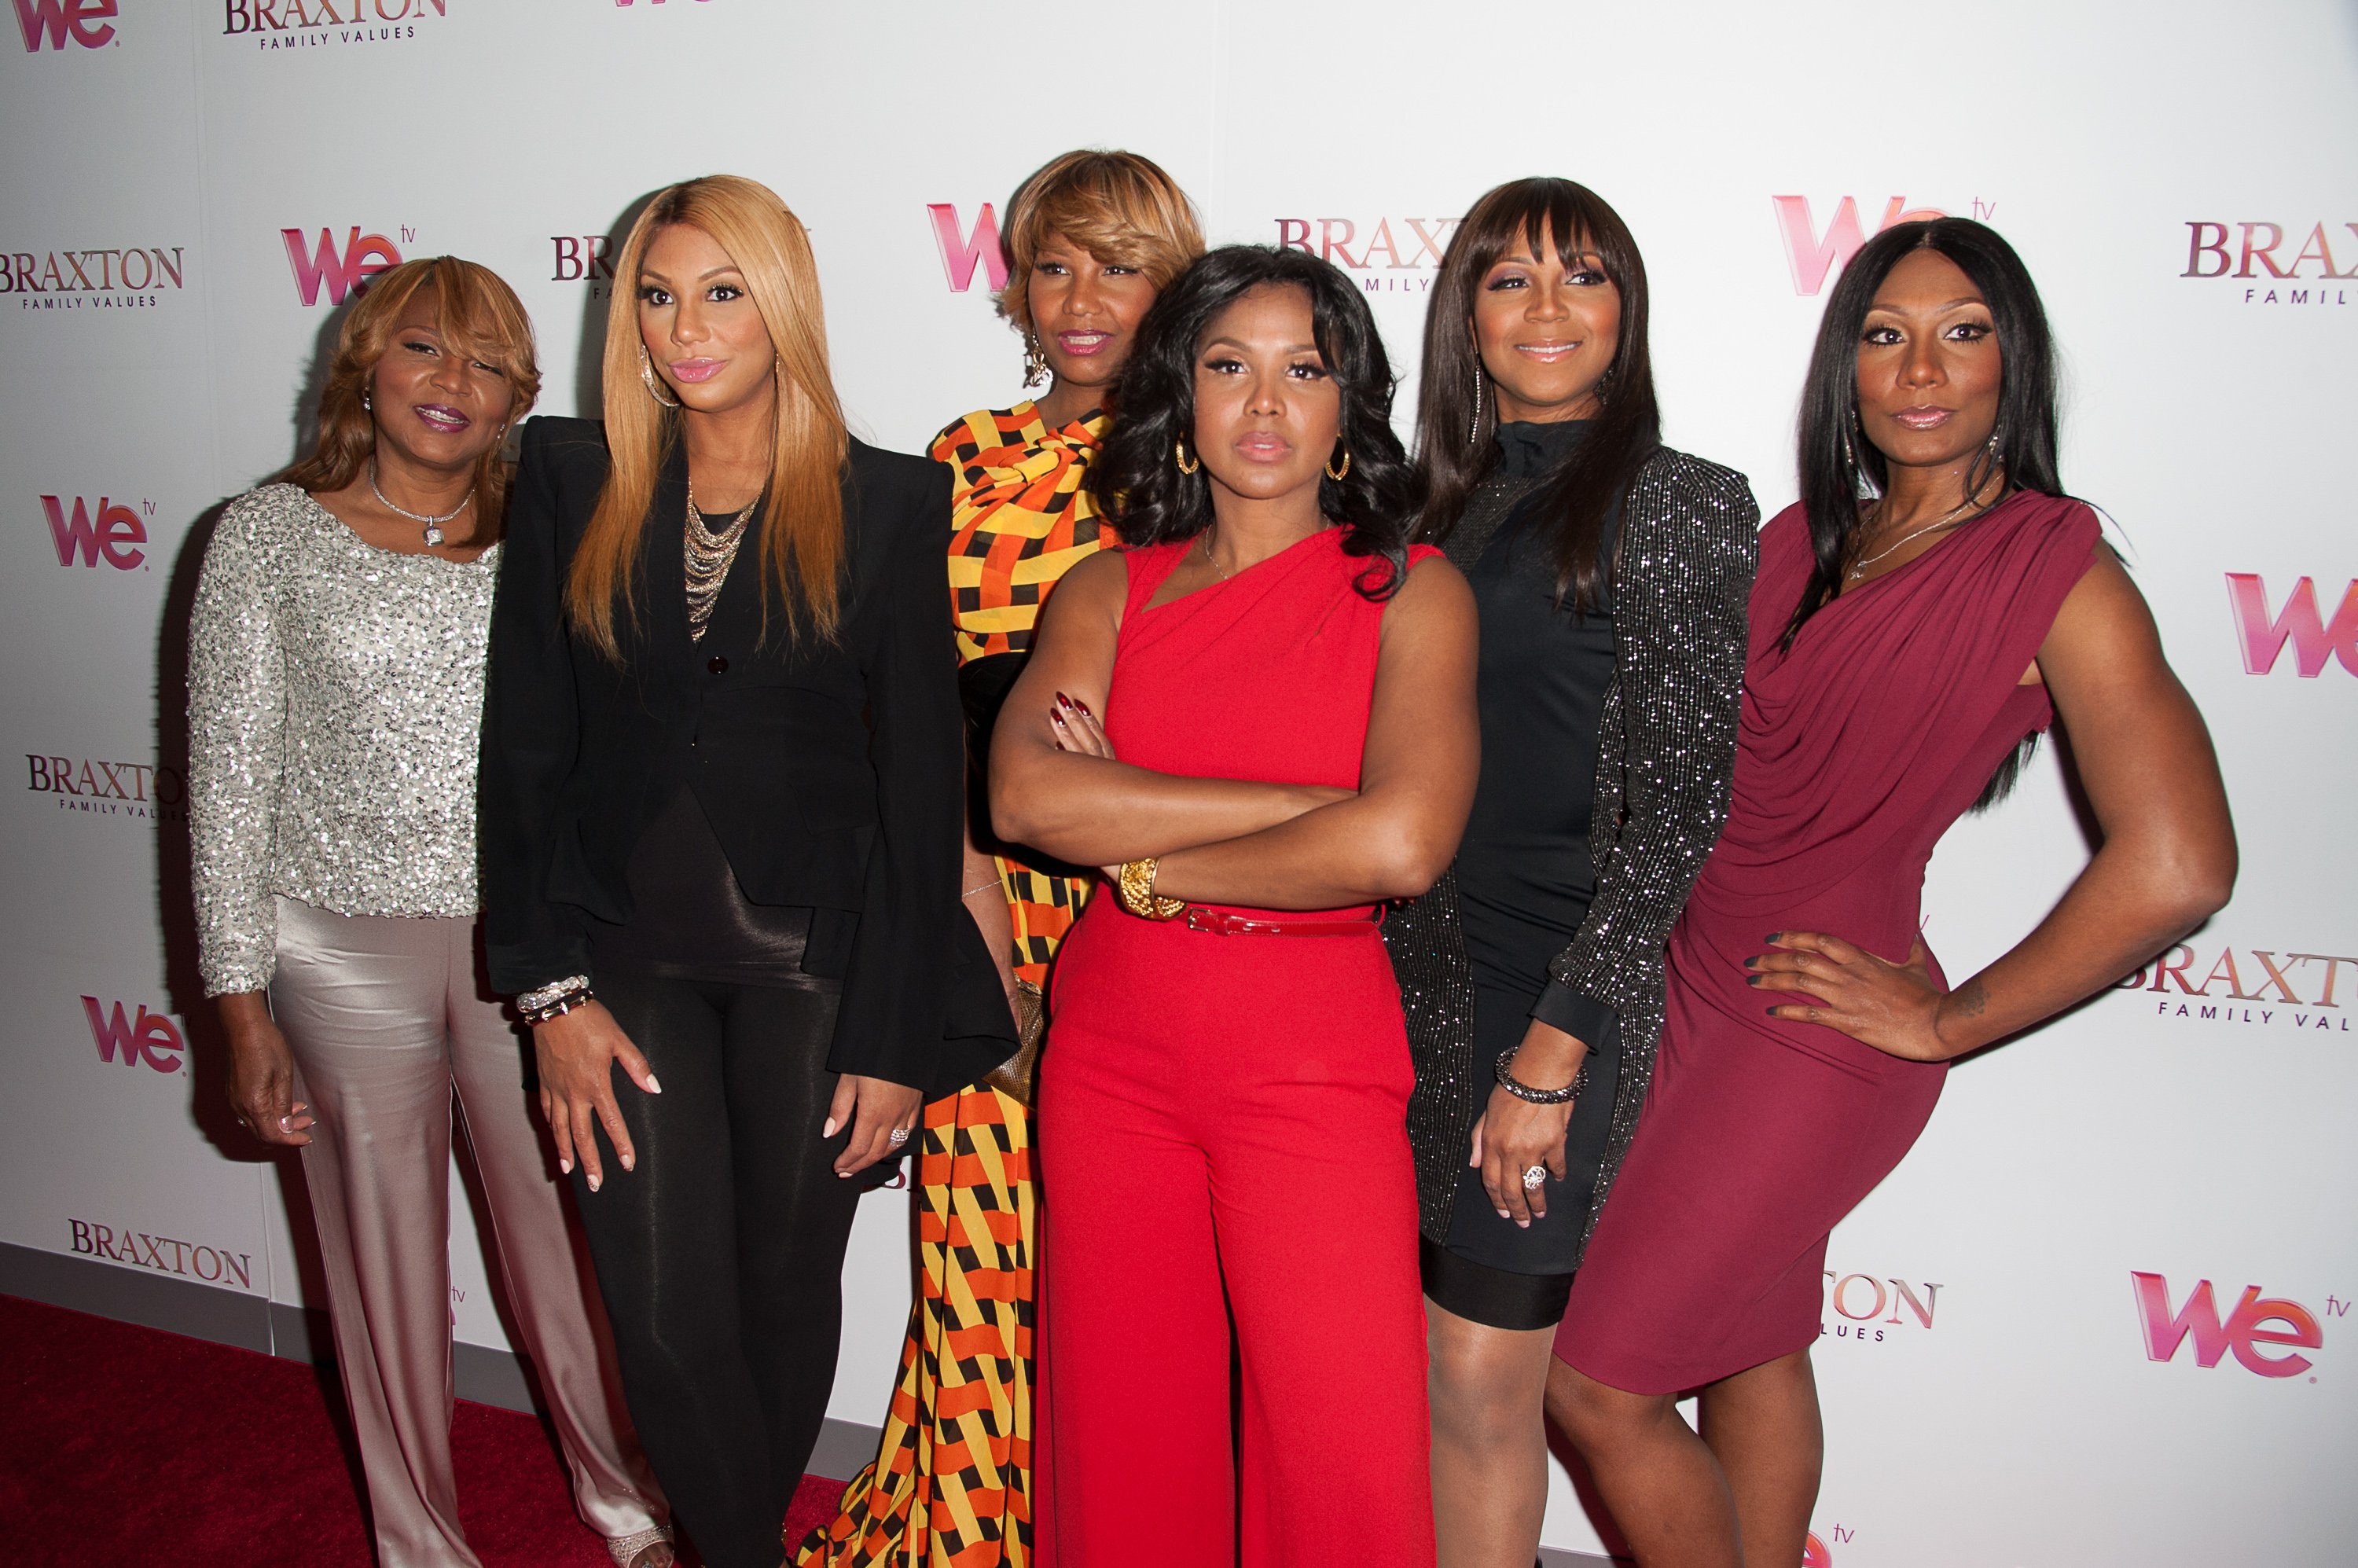 "Evelyn Braxton, Tamar Braxton, Traci Braxton, Toni Braxton, Trina braxton and Towanda Braxton at the ""Braxton Family Values"" Season Three premiere on March 13, 2013 l Source: Getty Images"